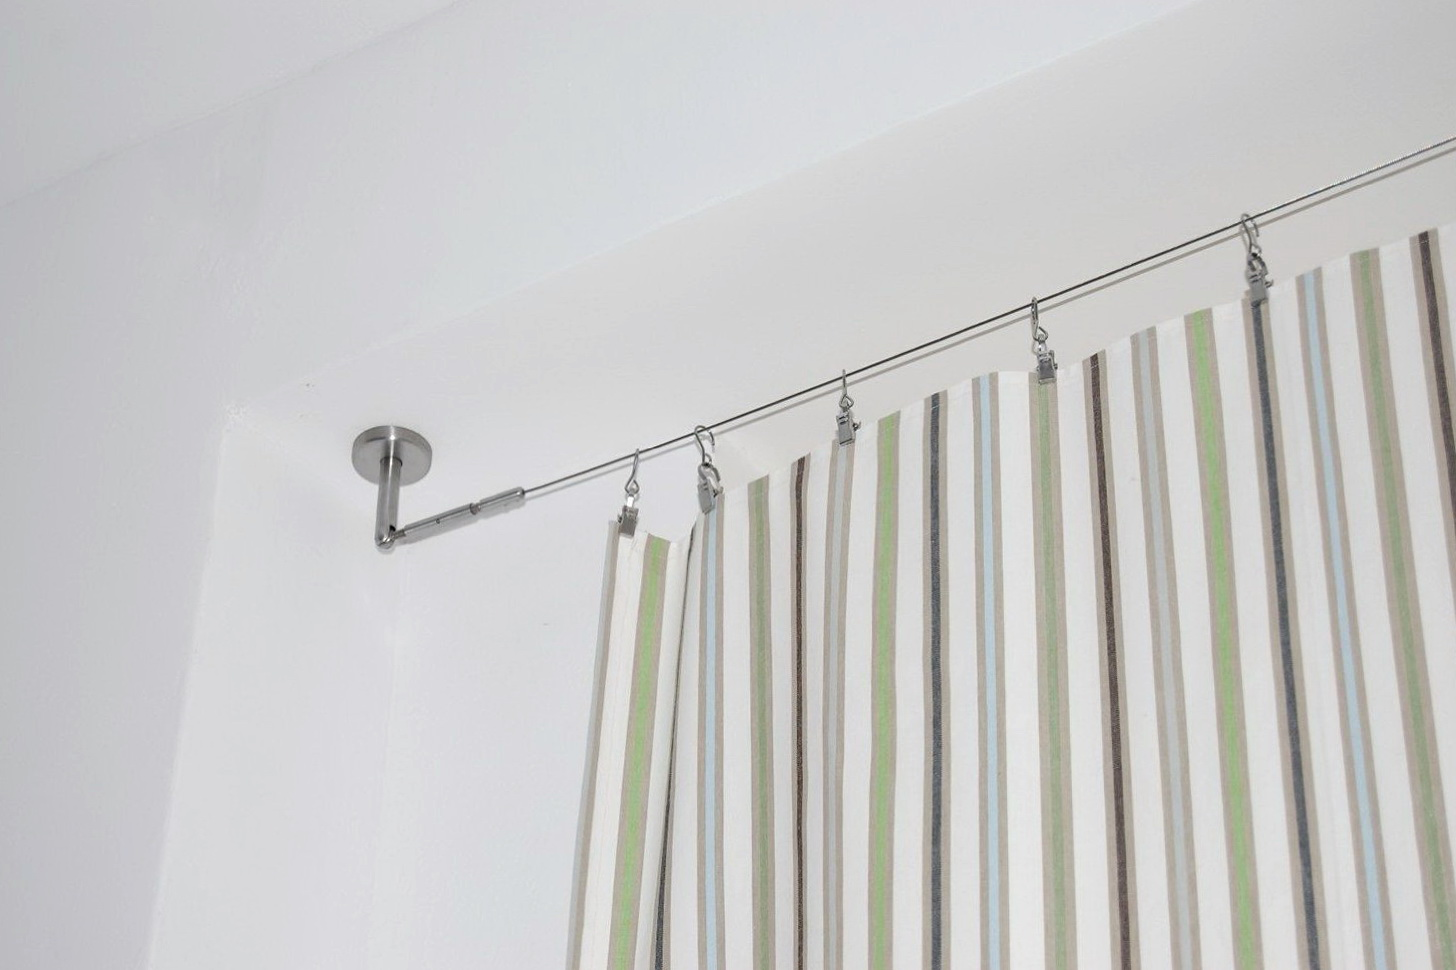 curtain tension product telescopic adjustable extendable spring rod shower pole